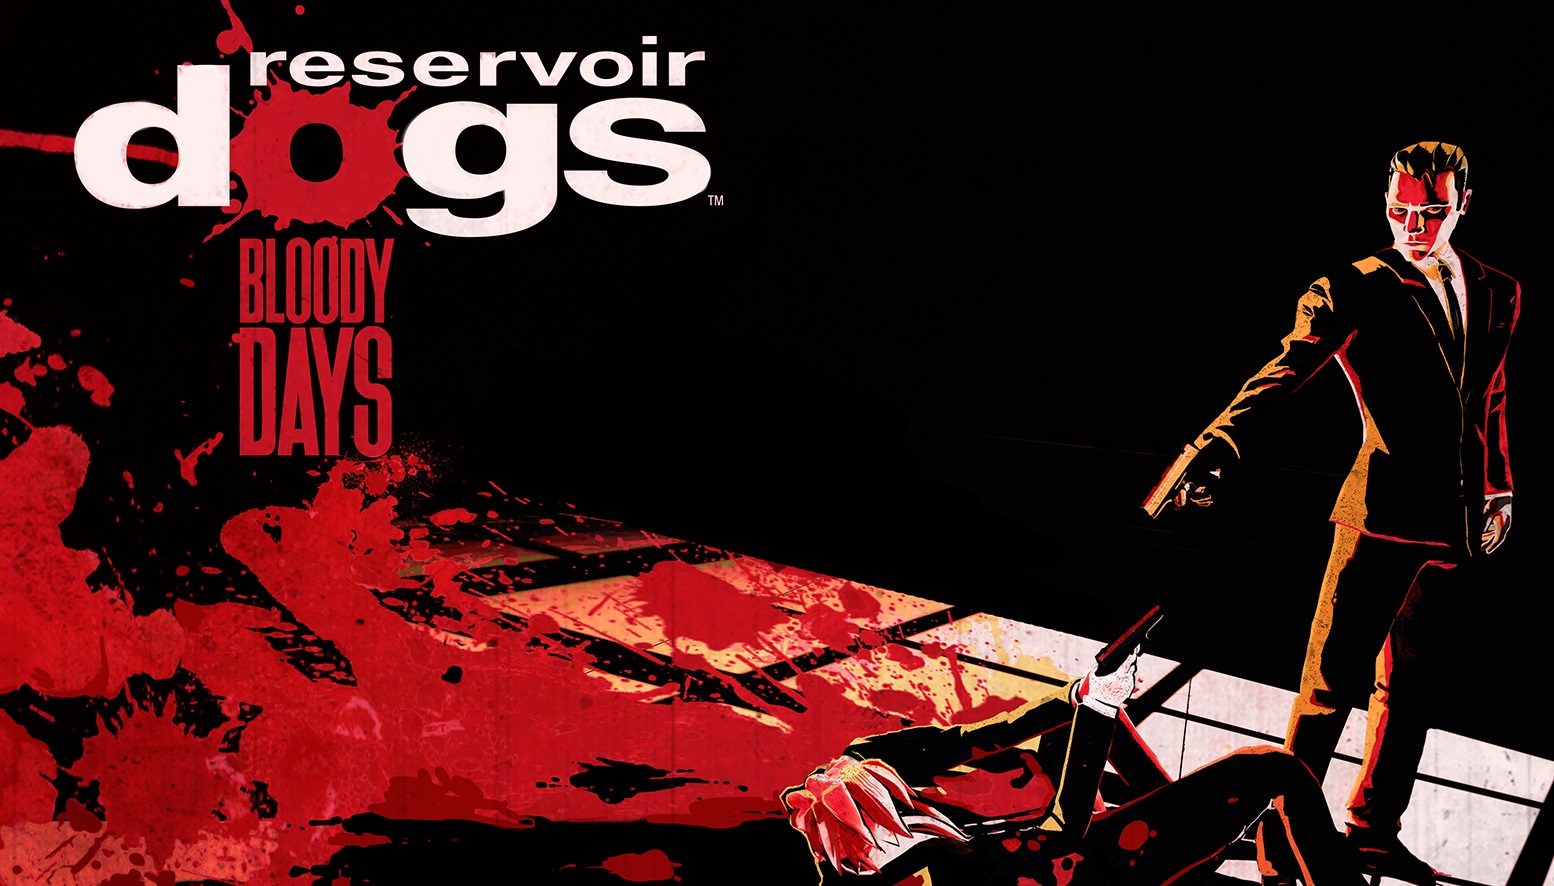 Reservoir Dogs Bloody Days Big Star Games